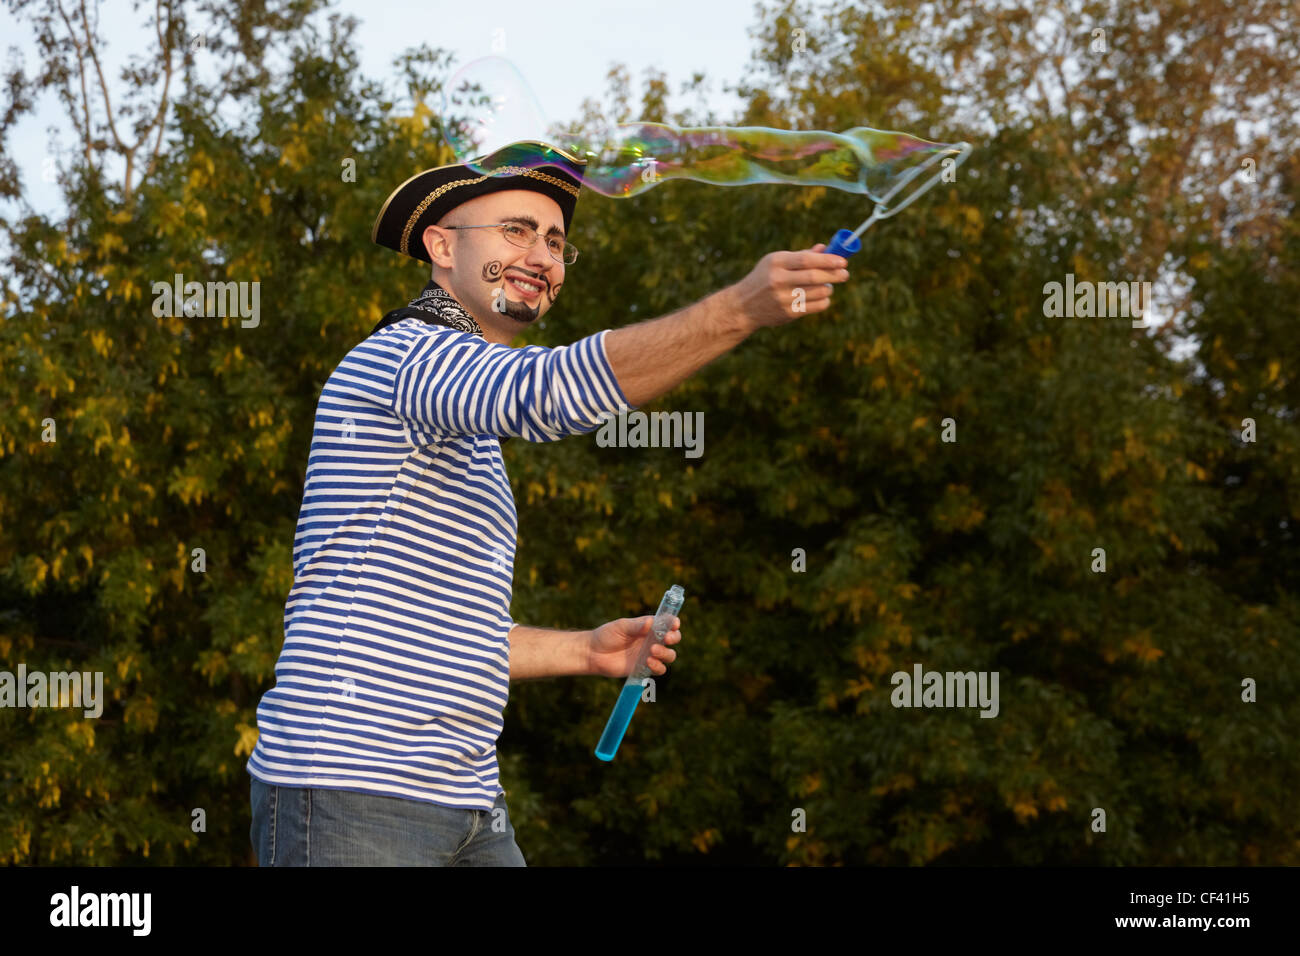 joyful man with drawed beard and whiskers in pirate suit is blowing soap bubbles. - Stock Image